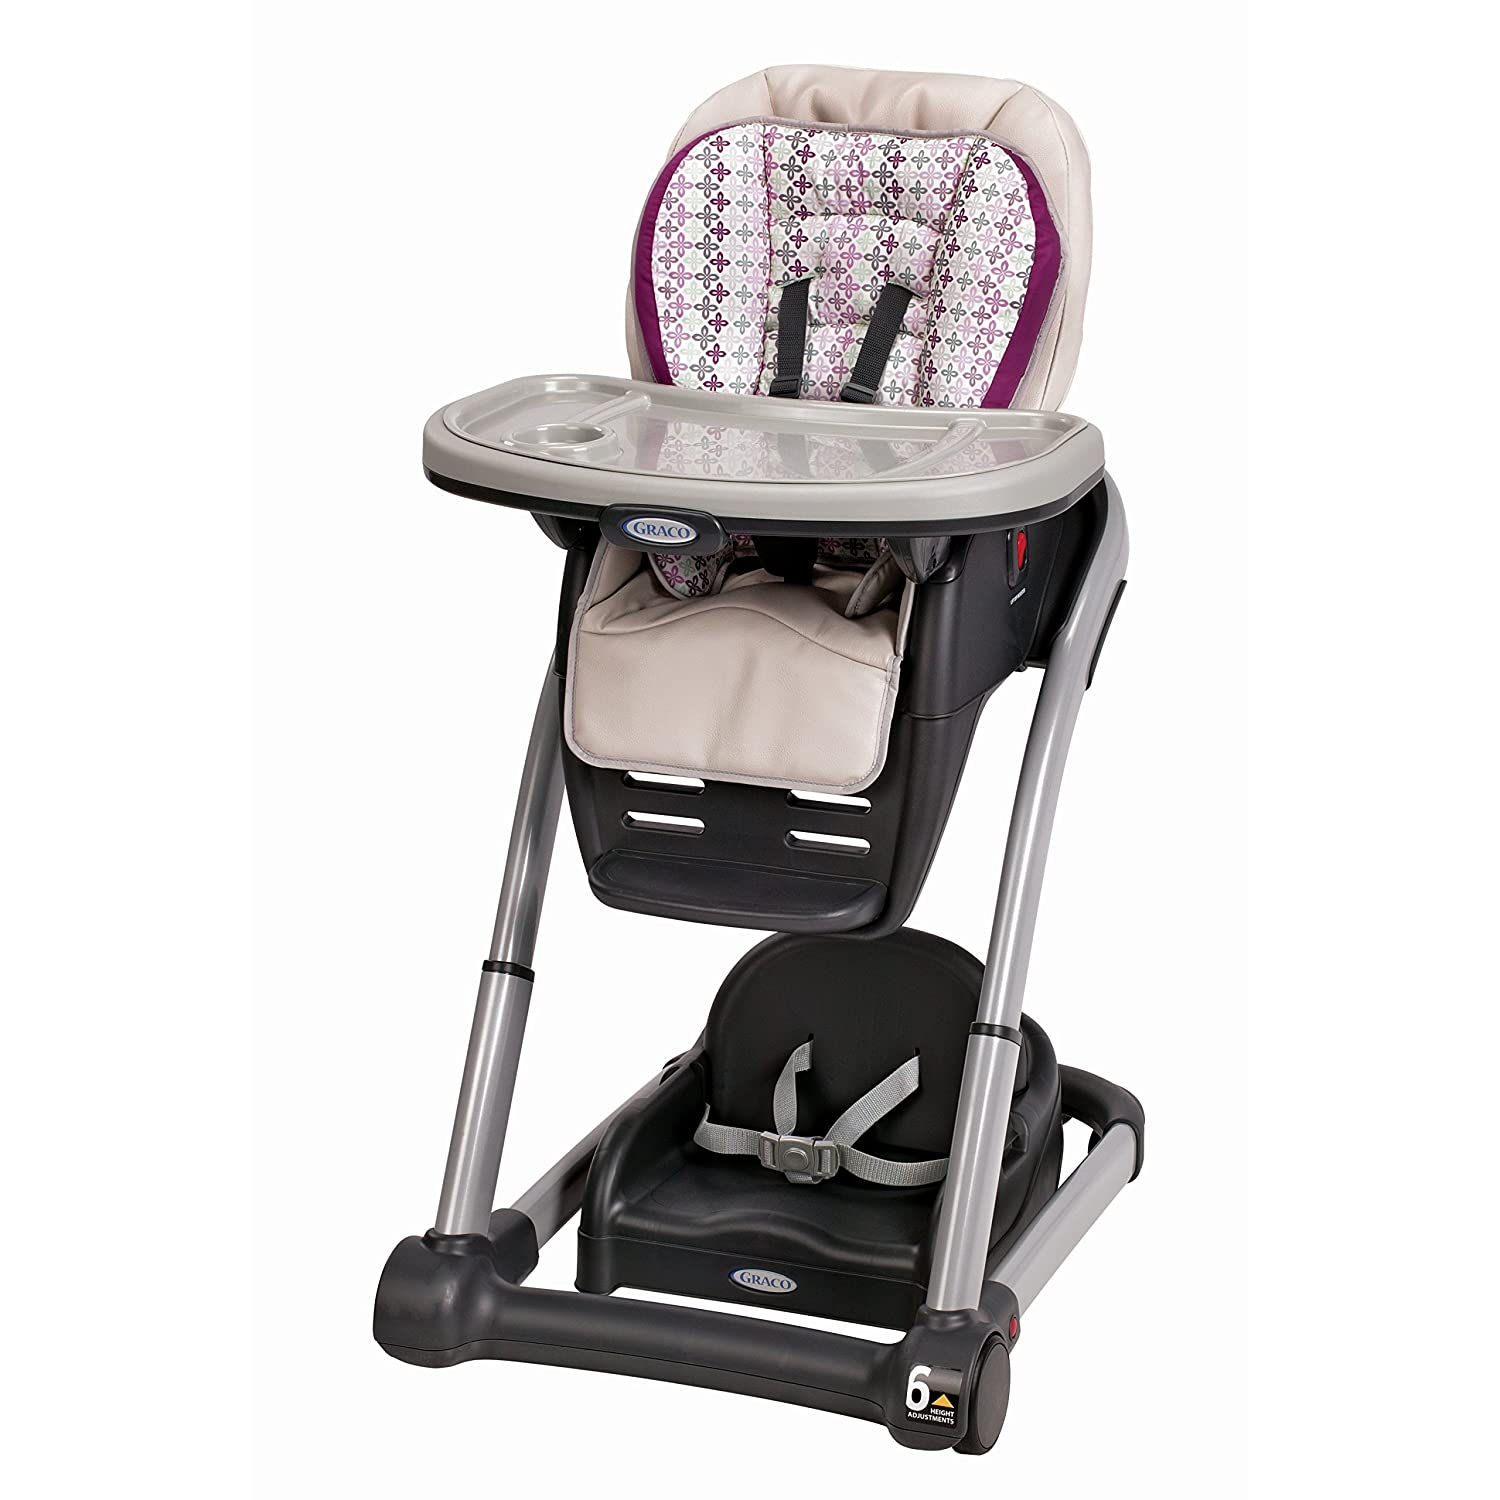 Graco Blossom 6-in-1 Convertible High Chair Seating System, Fifer 1907177